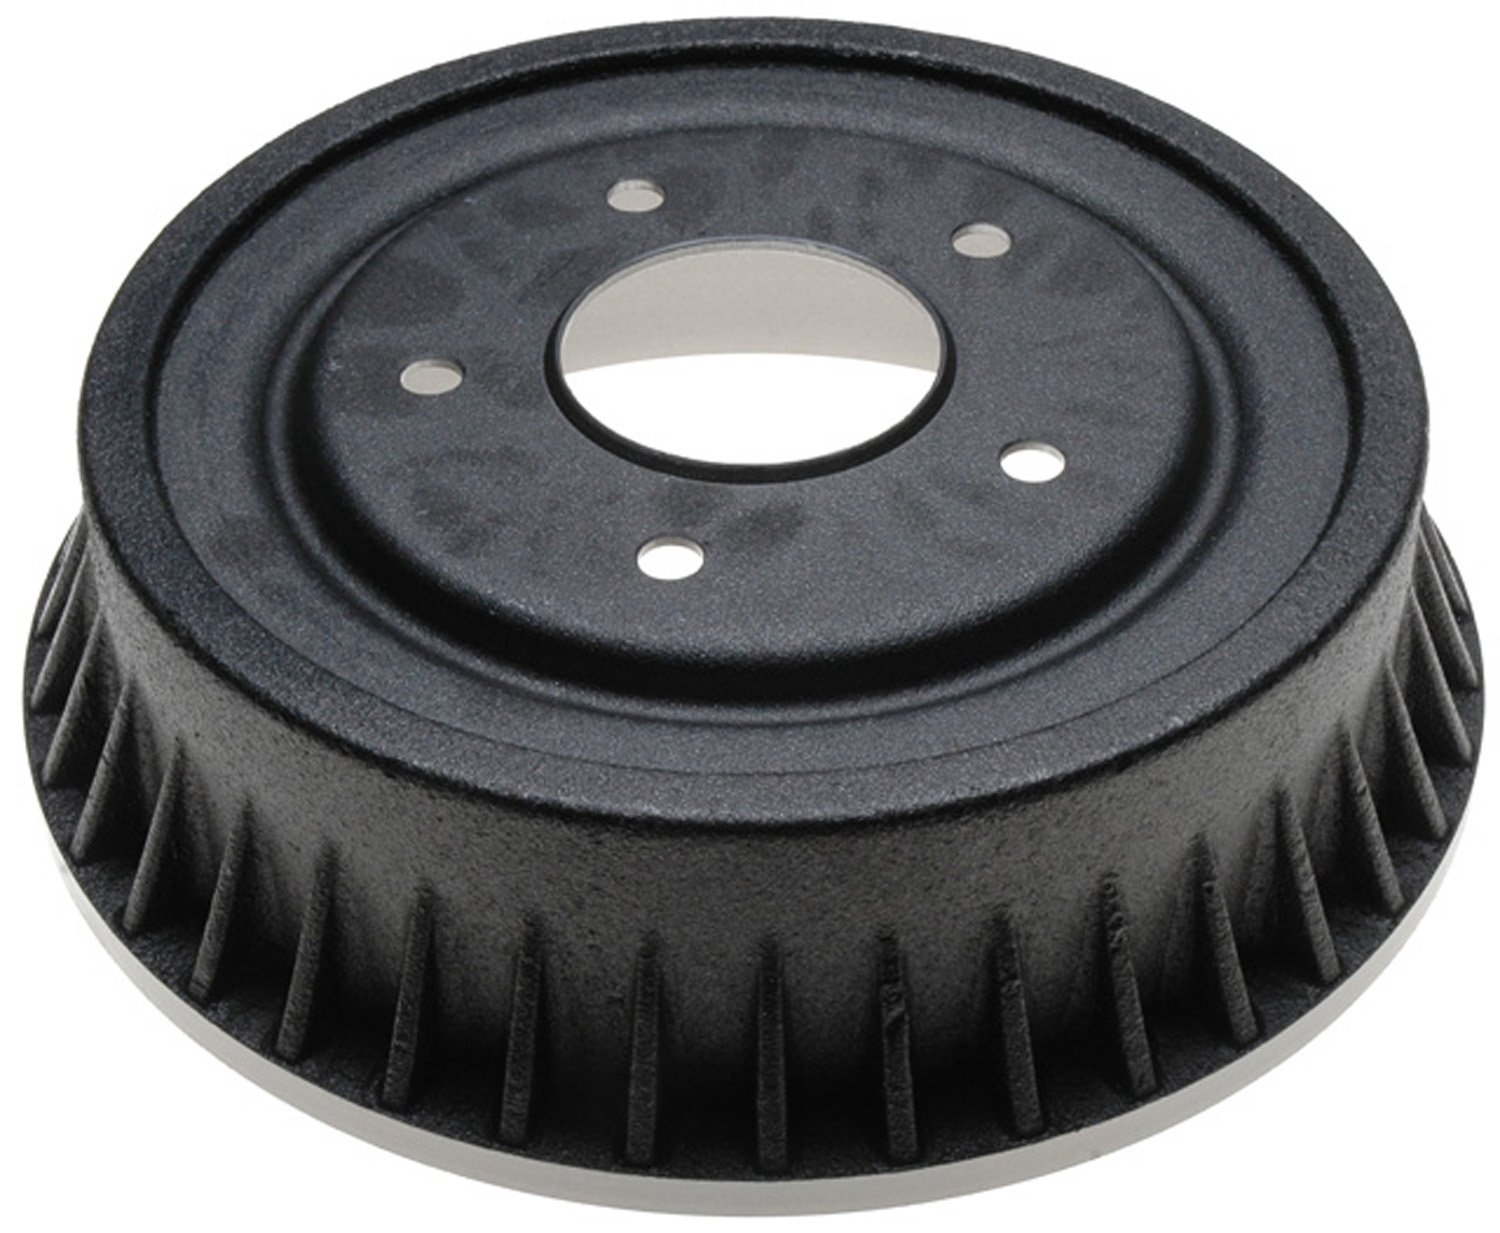 ACDelco 18B469 Professional Front Brake Drum